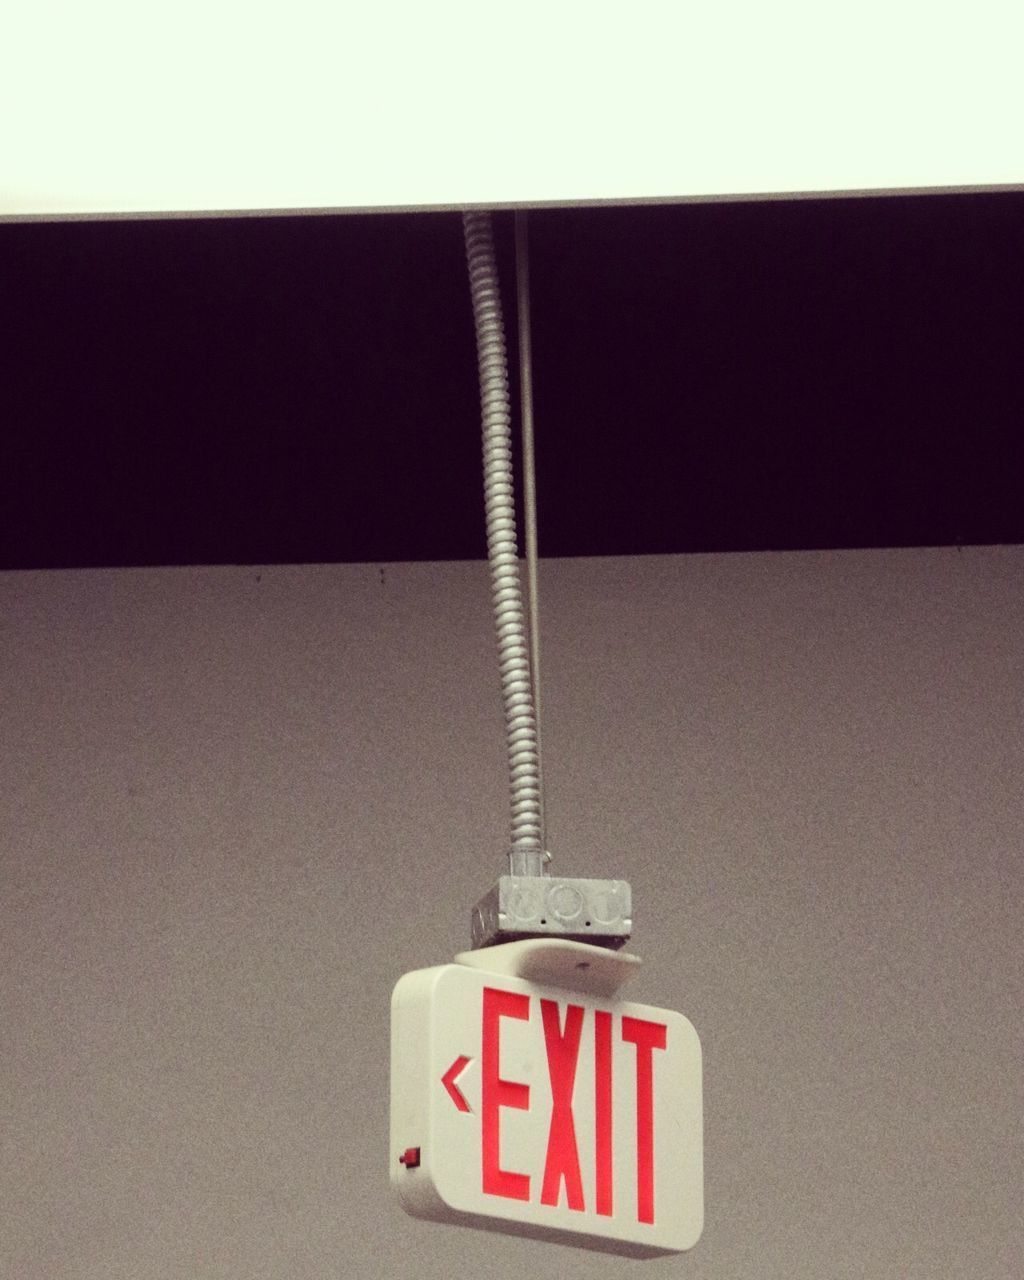 communication, indoors, no people, text, sign, close-up, hanging, wall - building feature, western script, cable, still life, technology, copy space, warning sign, information, plastic, number, safety, studio shot, connection